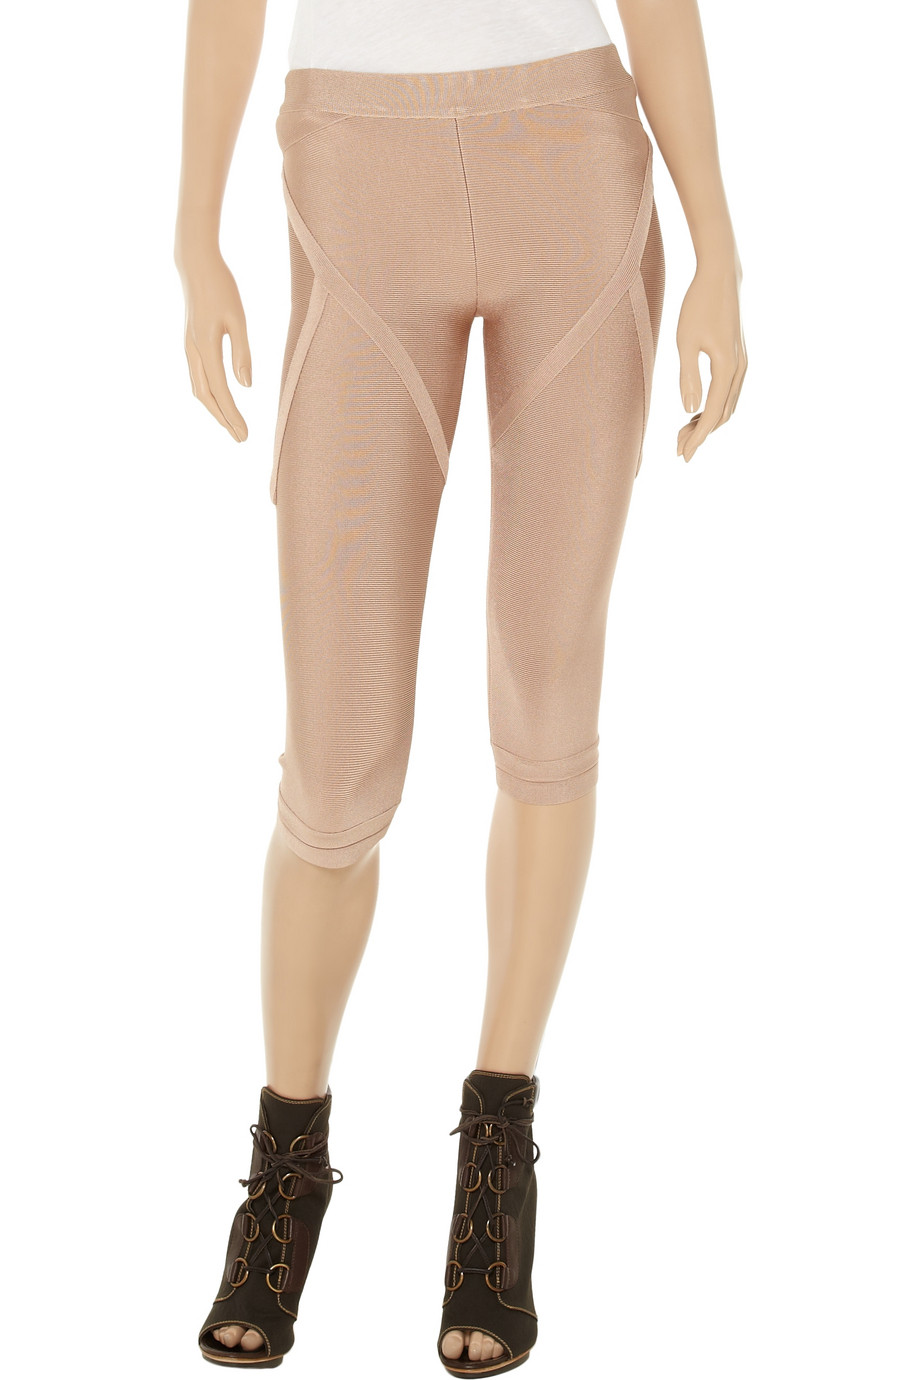 5406c5bbb8b1 Lyst - Hervé Léger Cropped Bandage Leggings in Natural